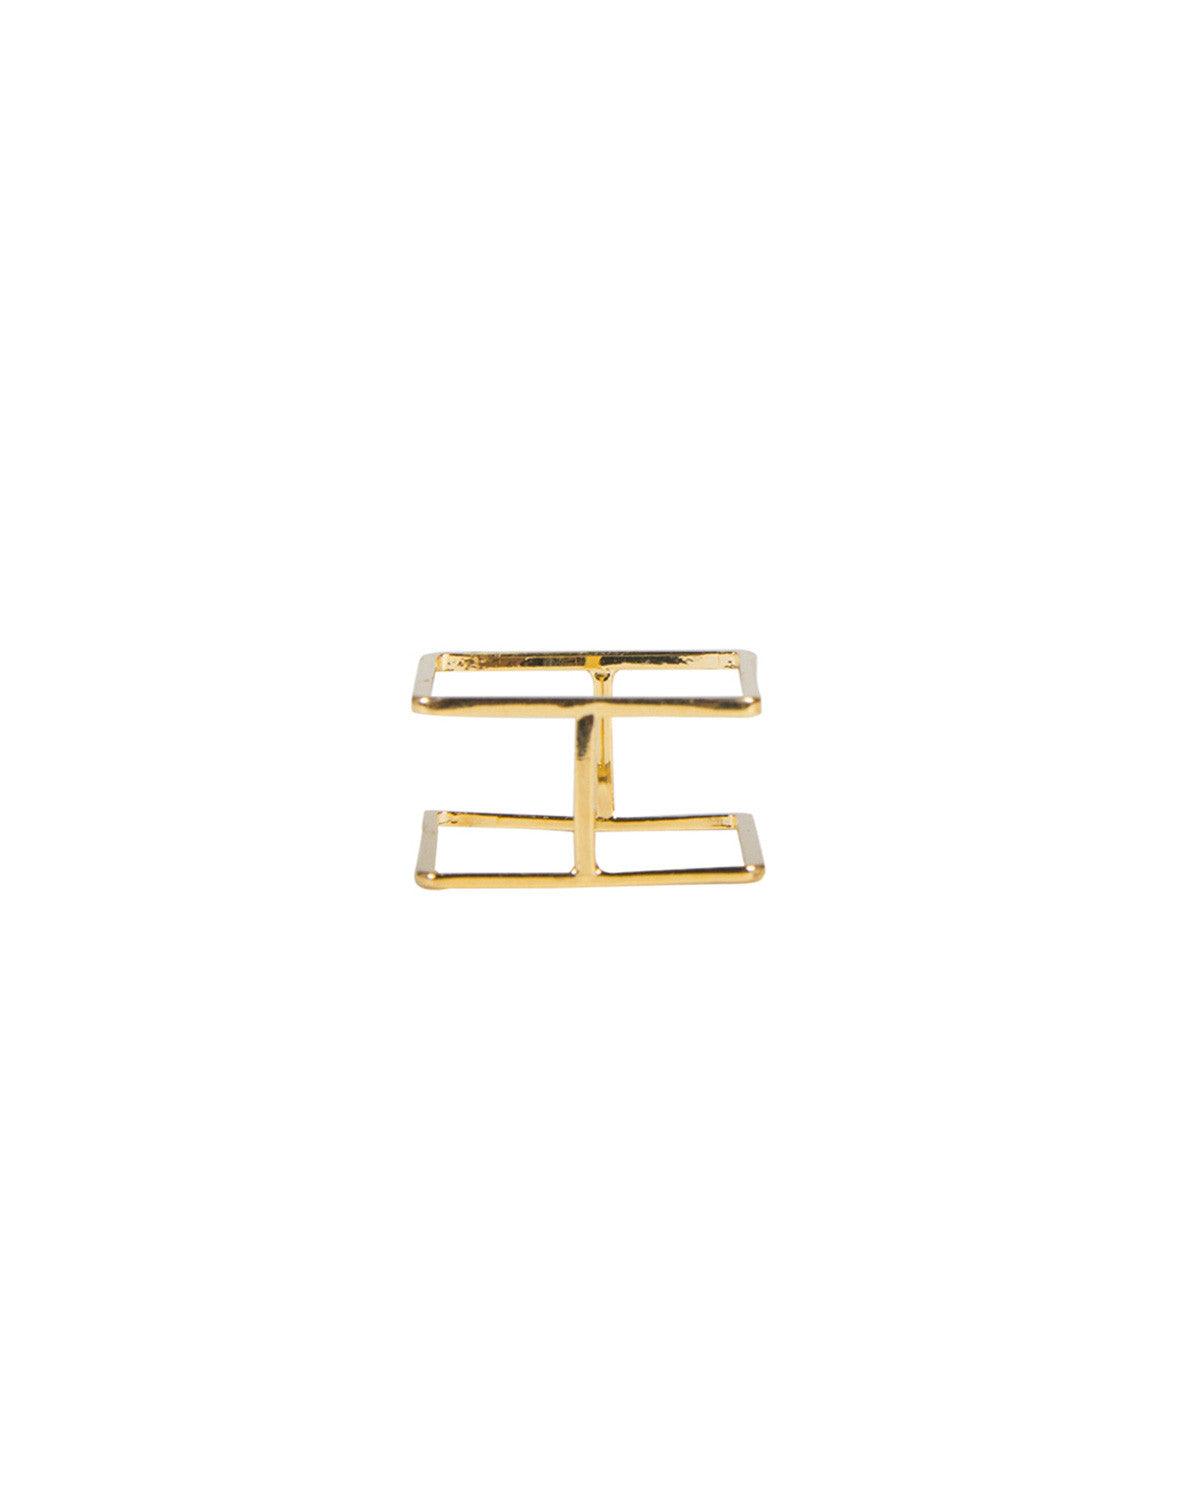 Double Square Bar Ring - Gold - Ana GR 7547-Gold